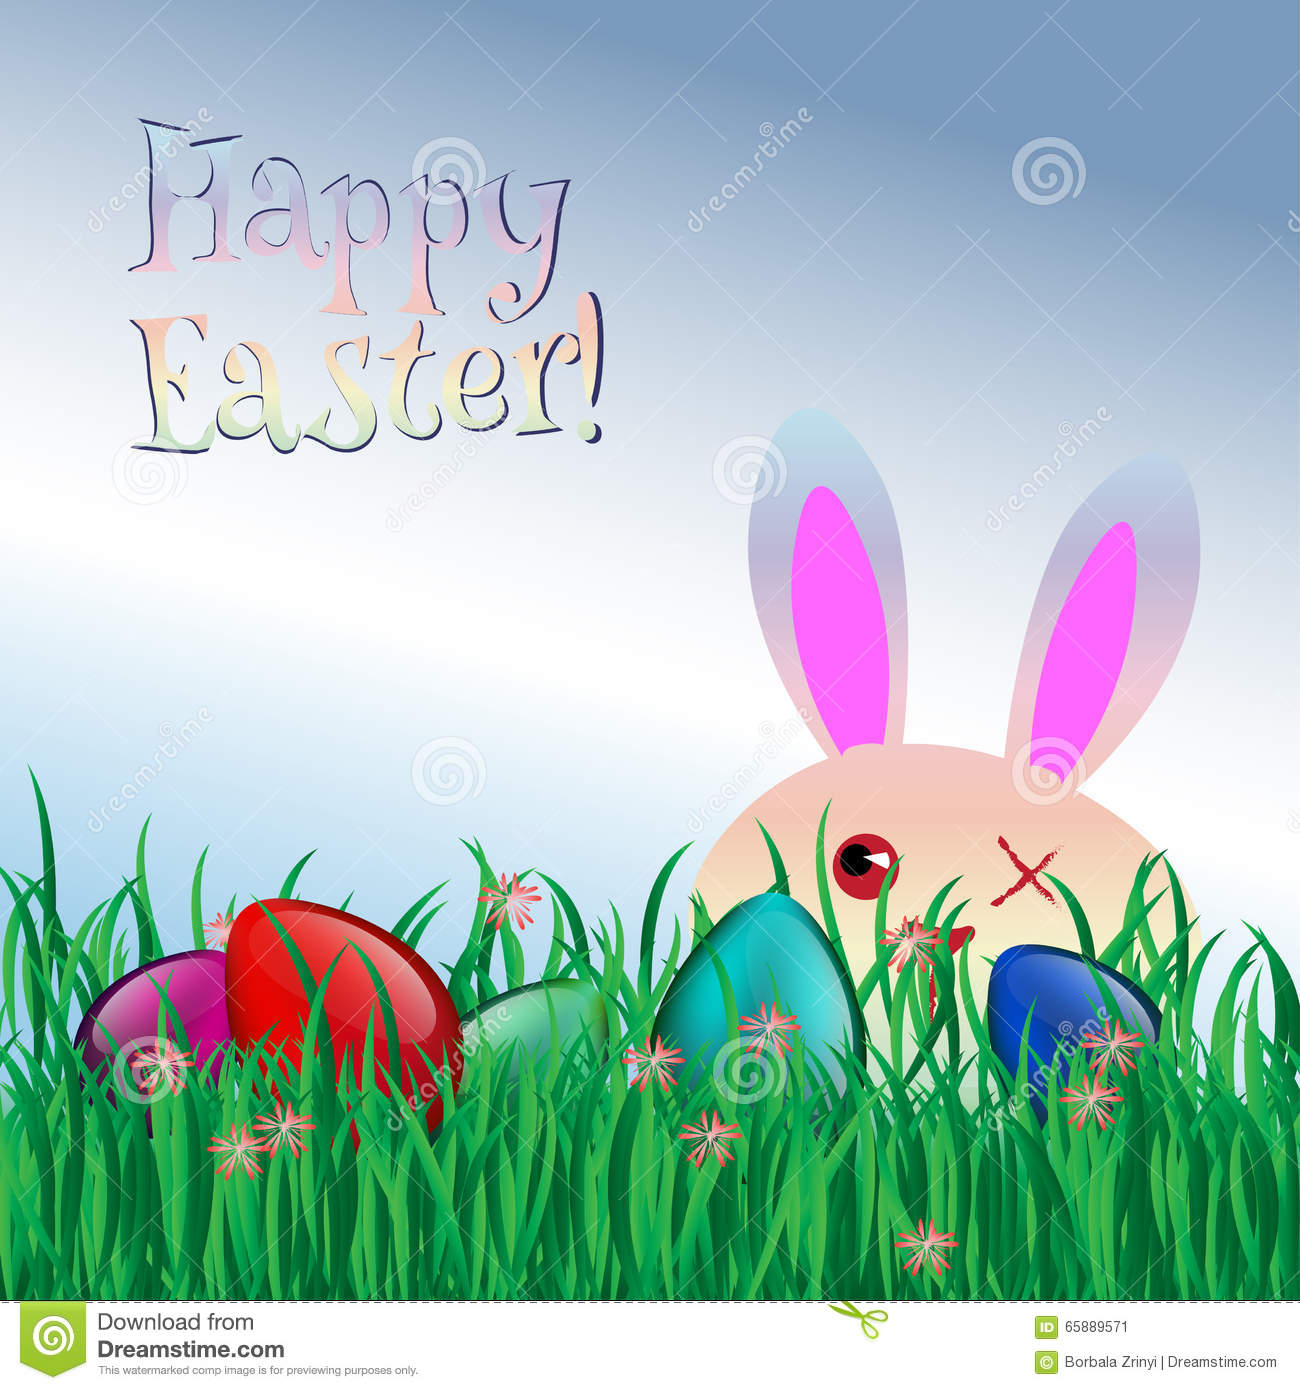 Happy easter greeting card funny bunny grass eggs stock vector happy easter greeting card funny bunny grass eggs kristyandbryce Choice Image